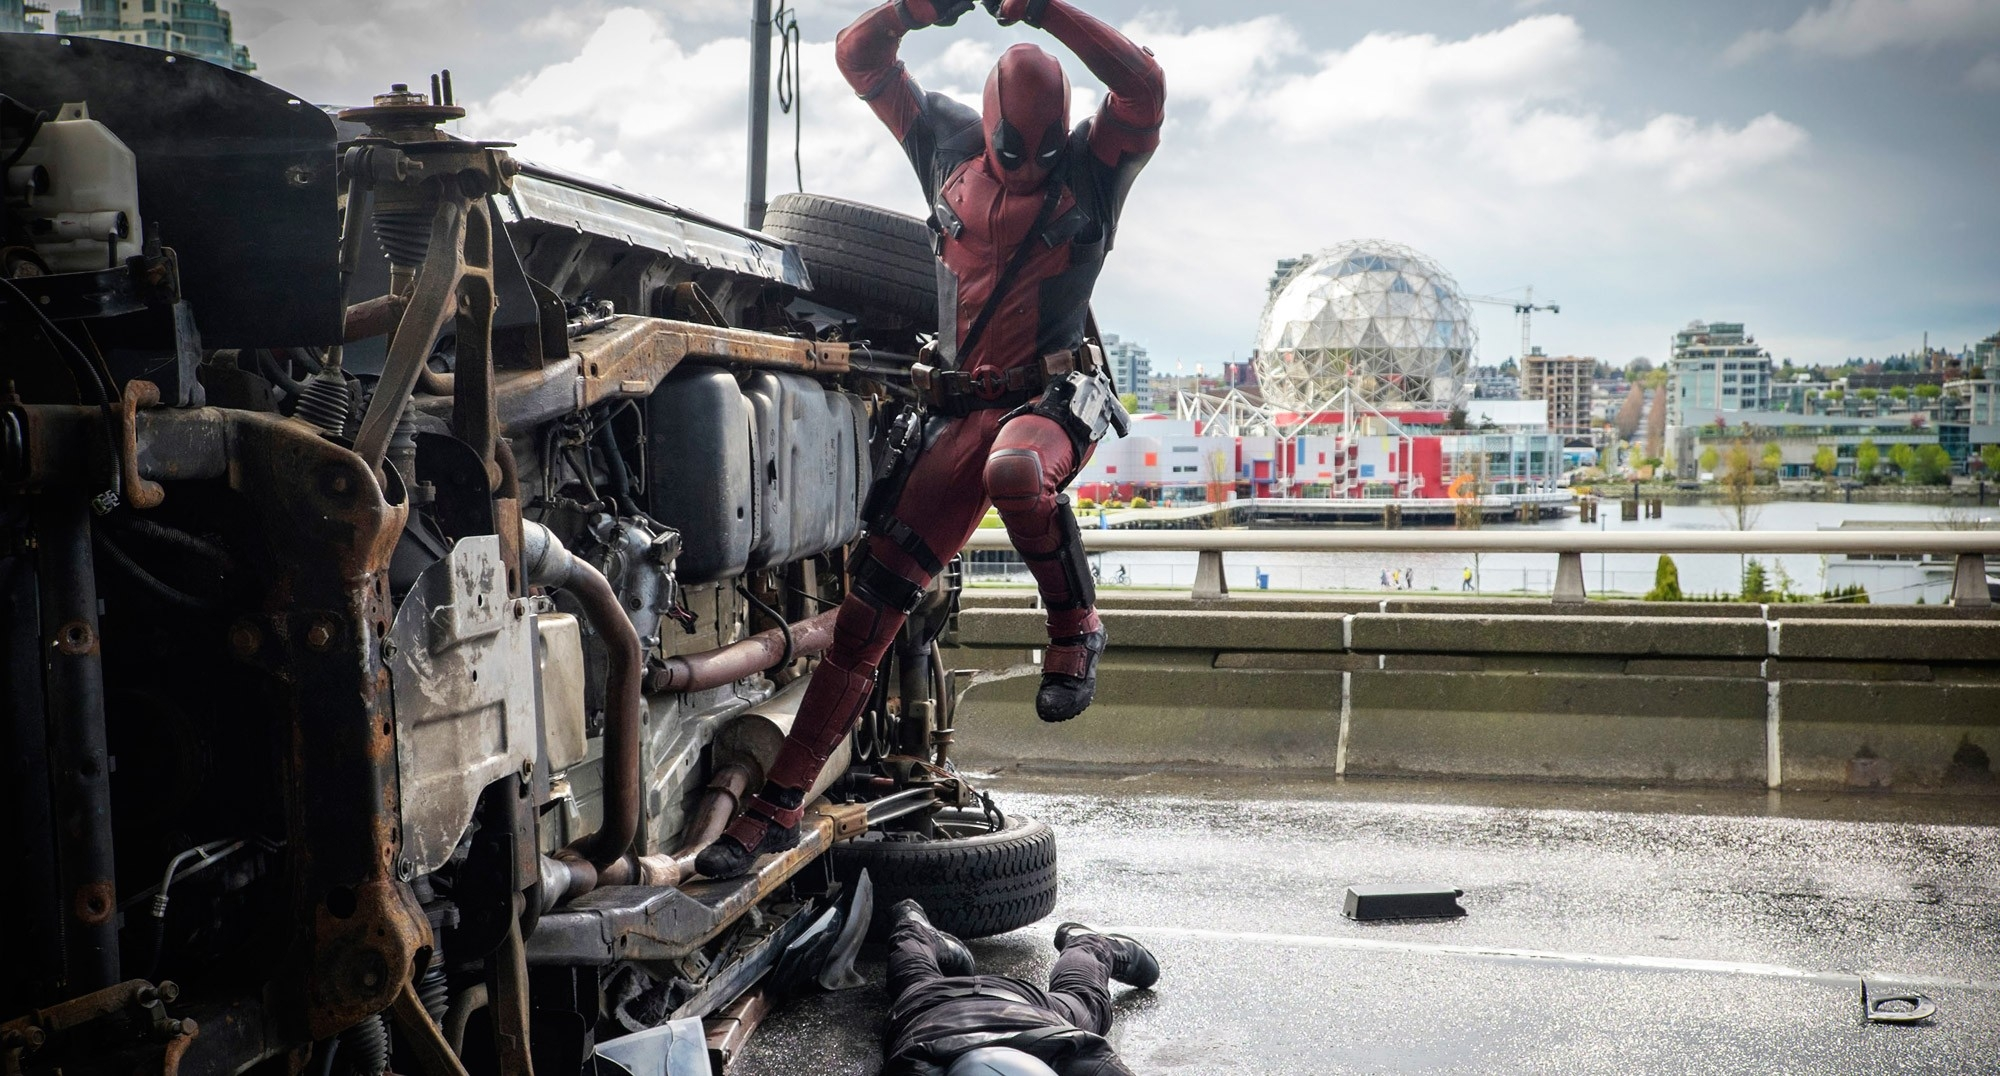 'Deadpool' mints Rs.29 crore in 10 days in India